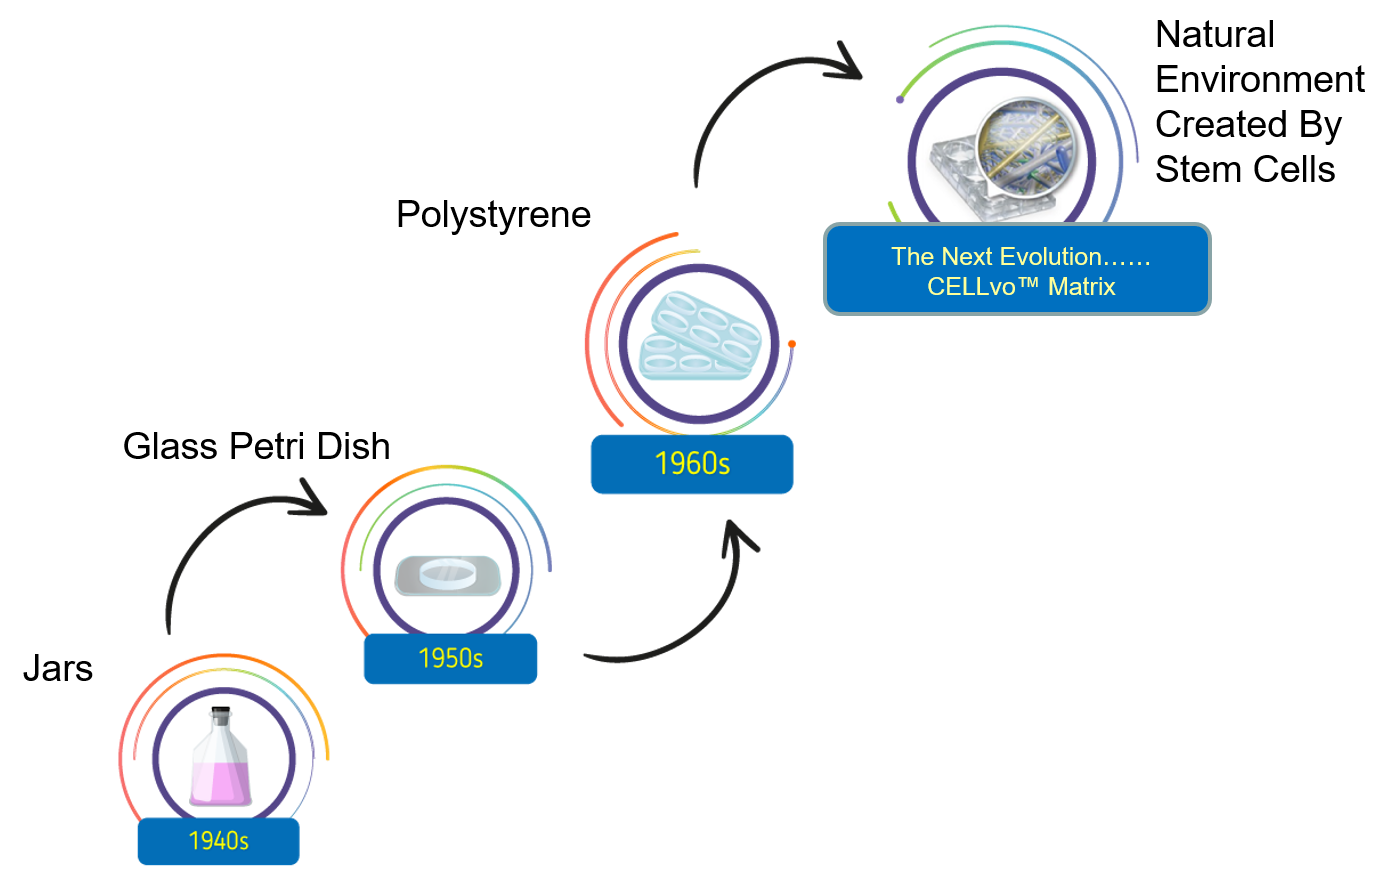 Depiction of evolution of cell culture from suspension cultures, to plastic dishes, to the future of biomimetics.